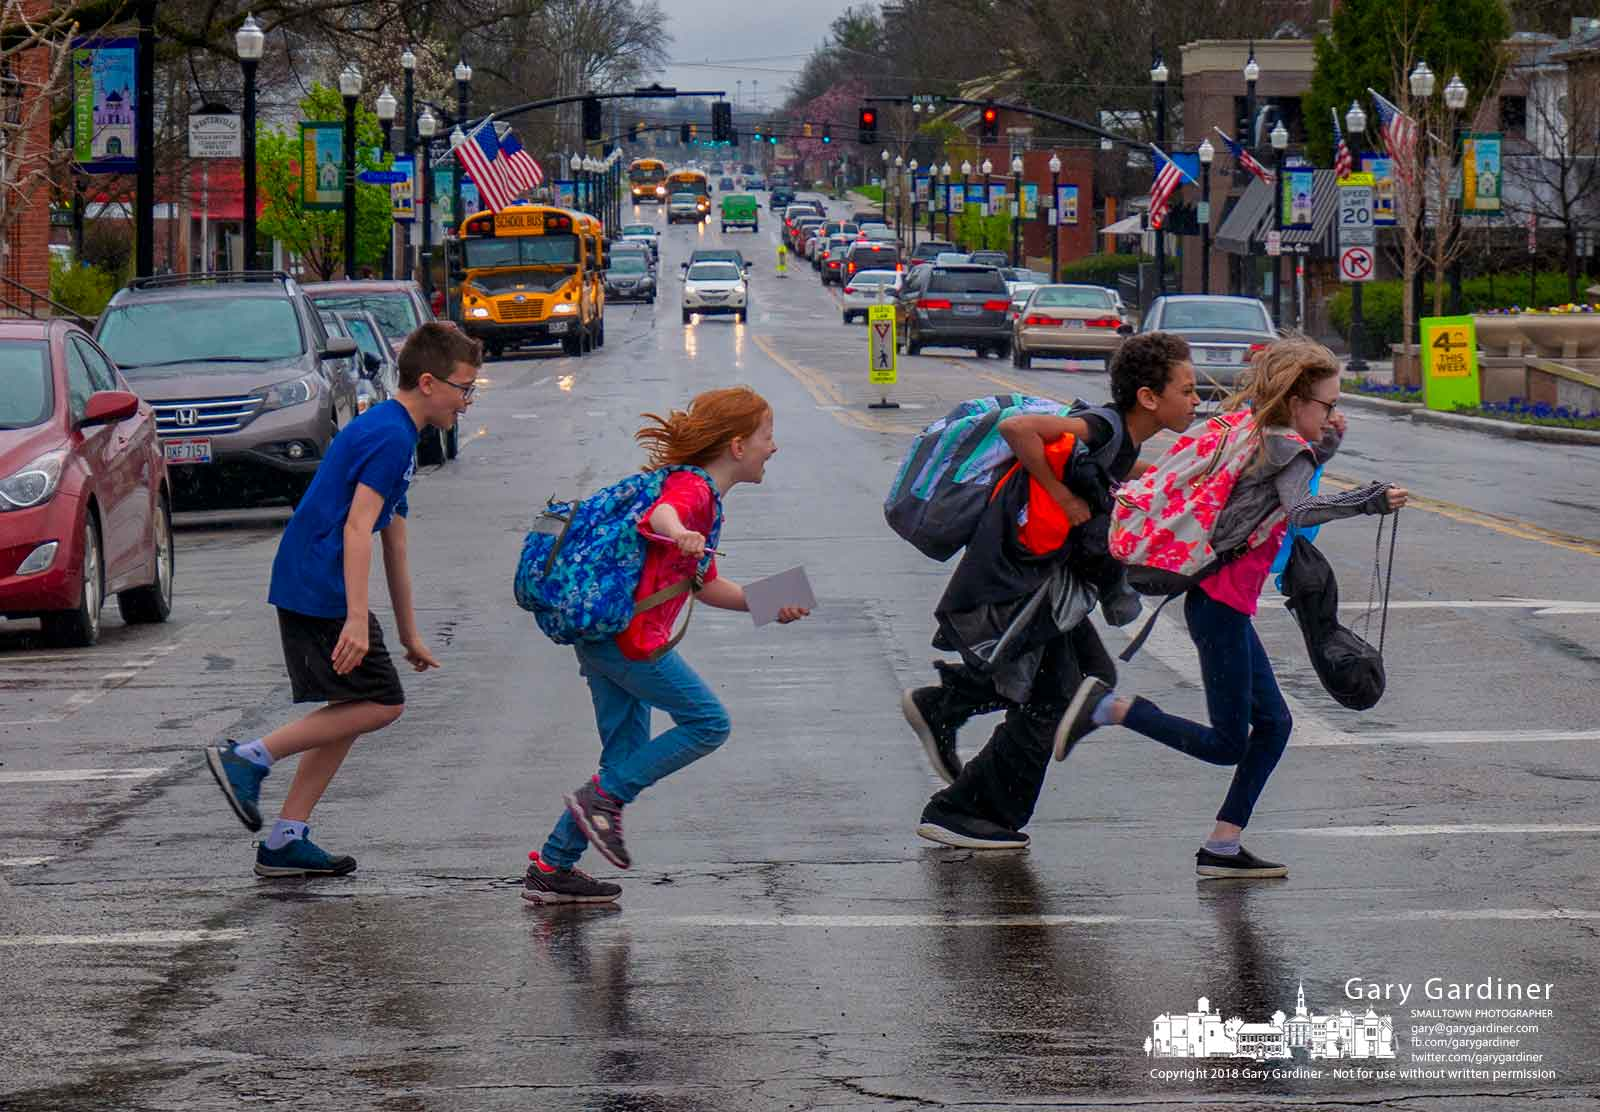 Trailed by their instructor, a small group of dancers dash across State Street during a brief lull in afternoon rain. My Final Photo for April 24, 2018.